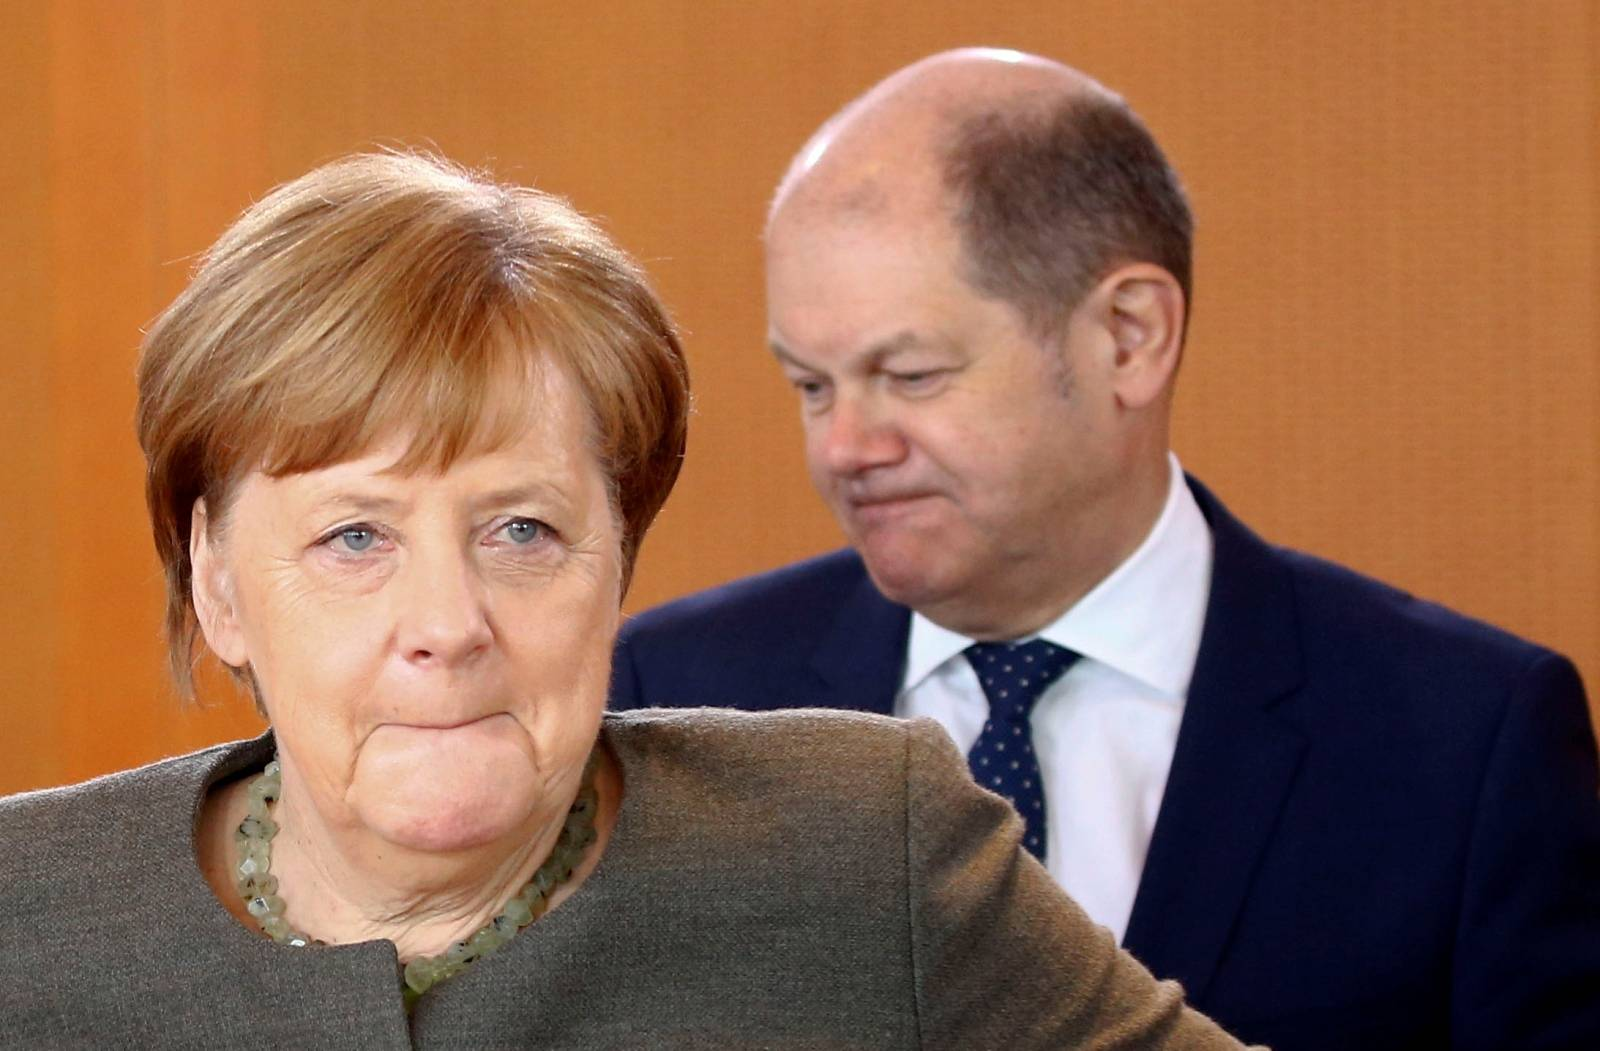 German Chancellor Angela Merkel and Finance Minister Olaf Scholz attend the cabinet meeting in Berlin